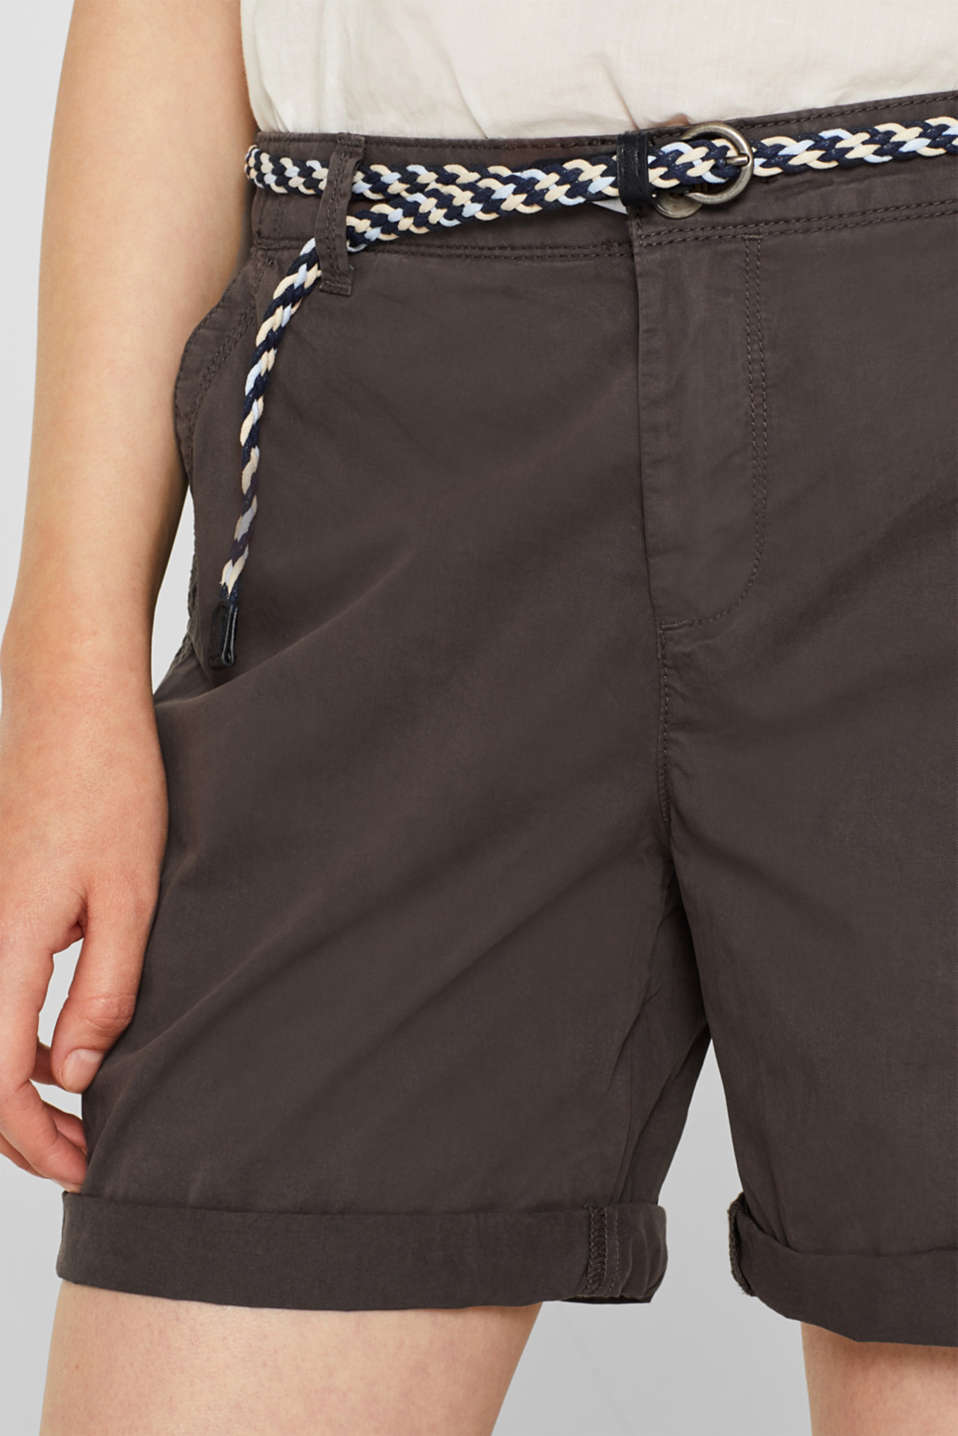 Shorts in a garment-washed look, 100% cotton, DARK GREY, detail image number 2